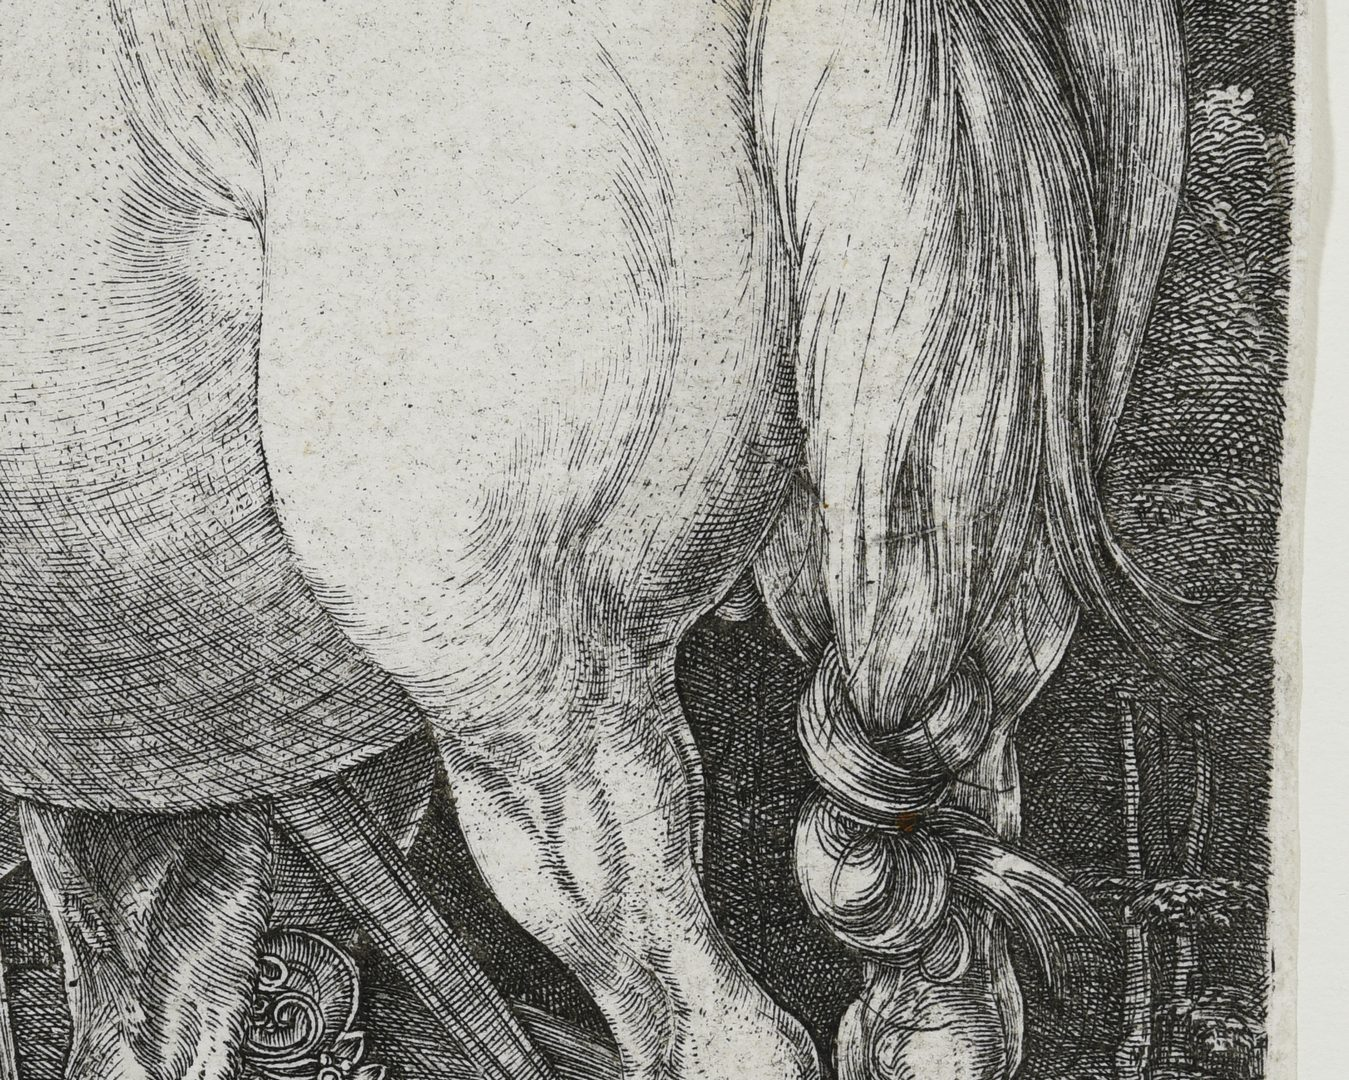 Lot 357 Albrecht Durer Quot The Large Horse Quot Engraving